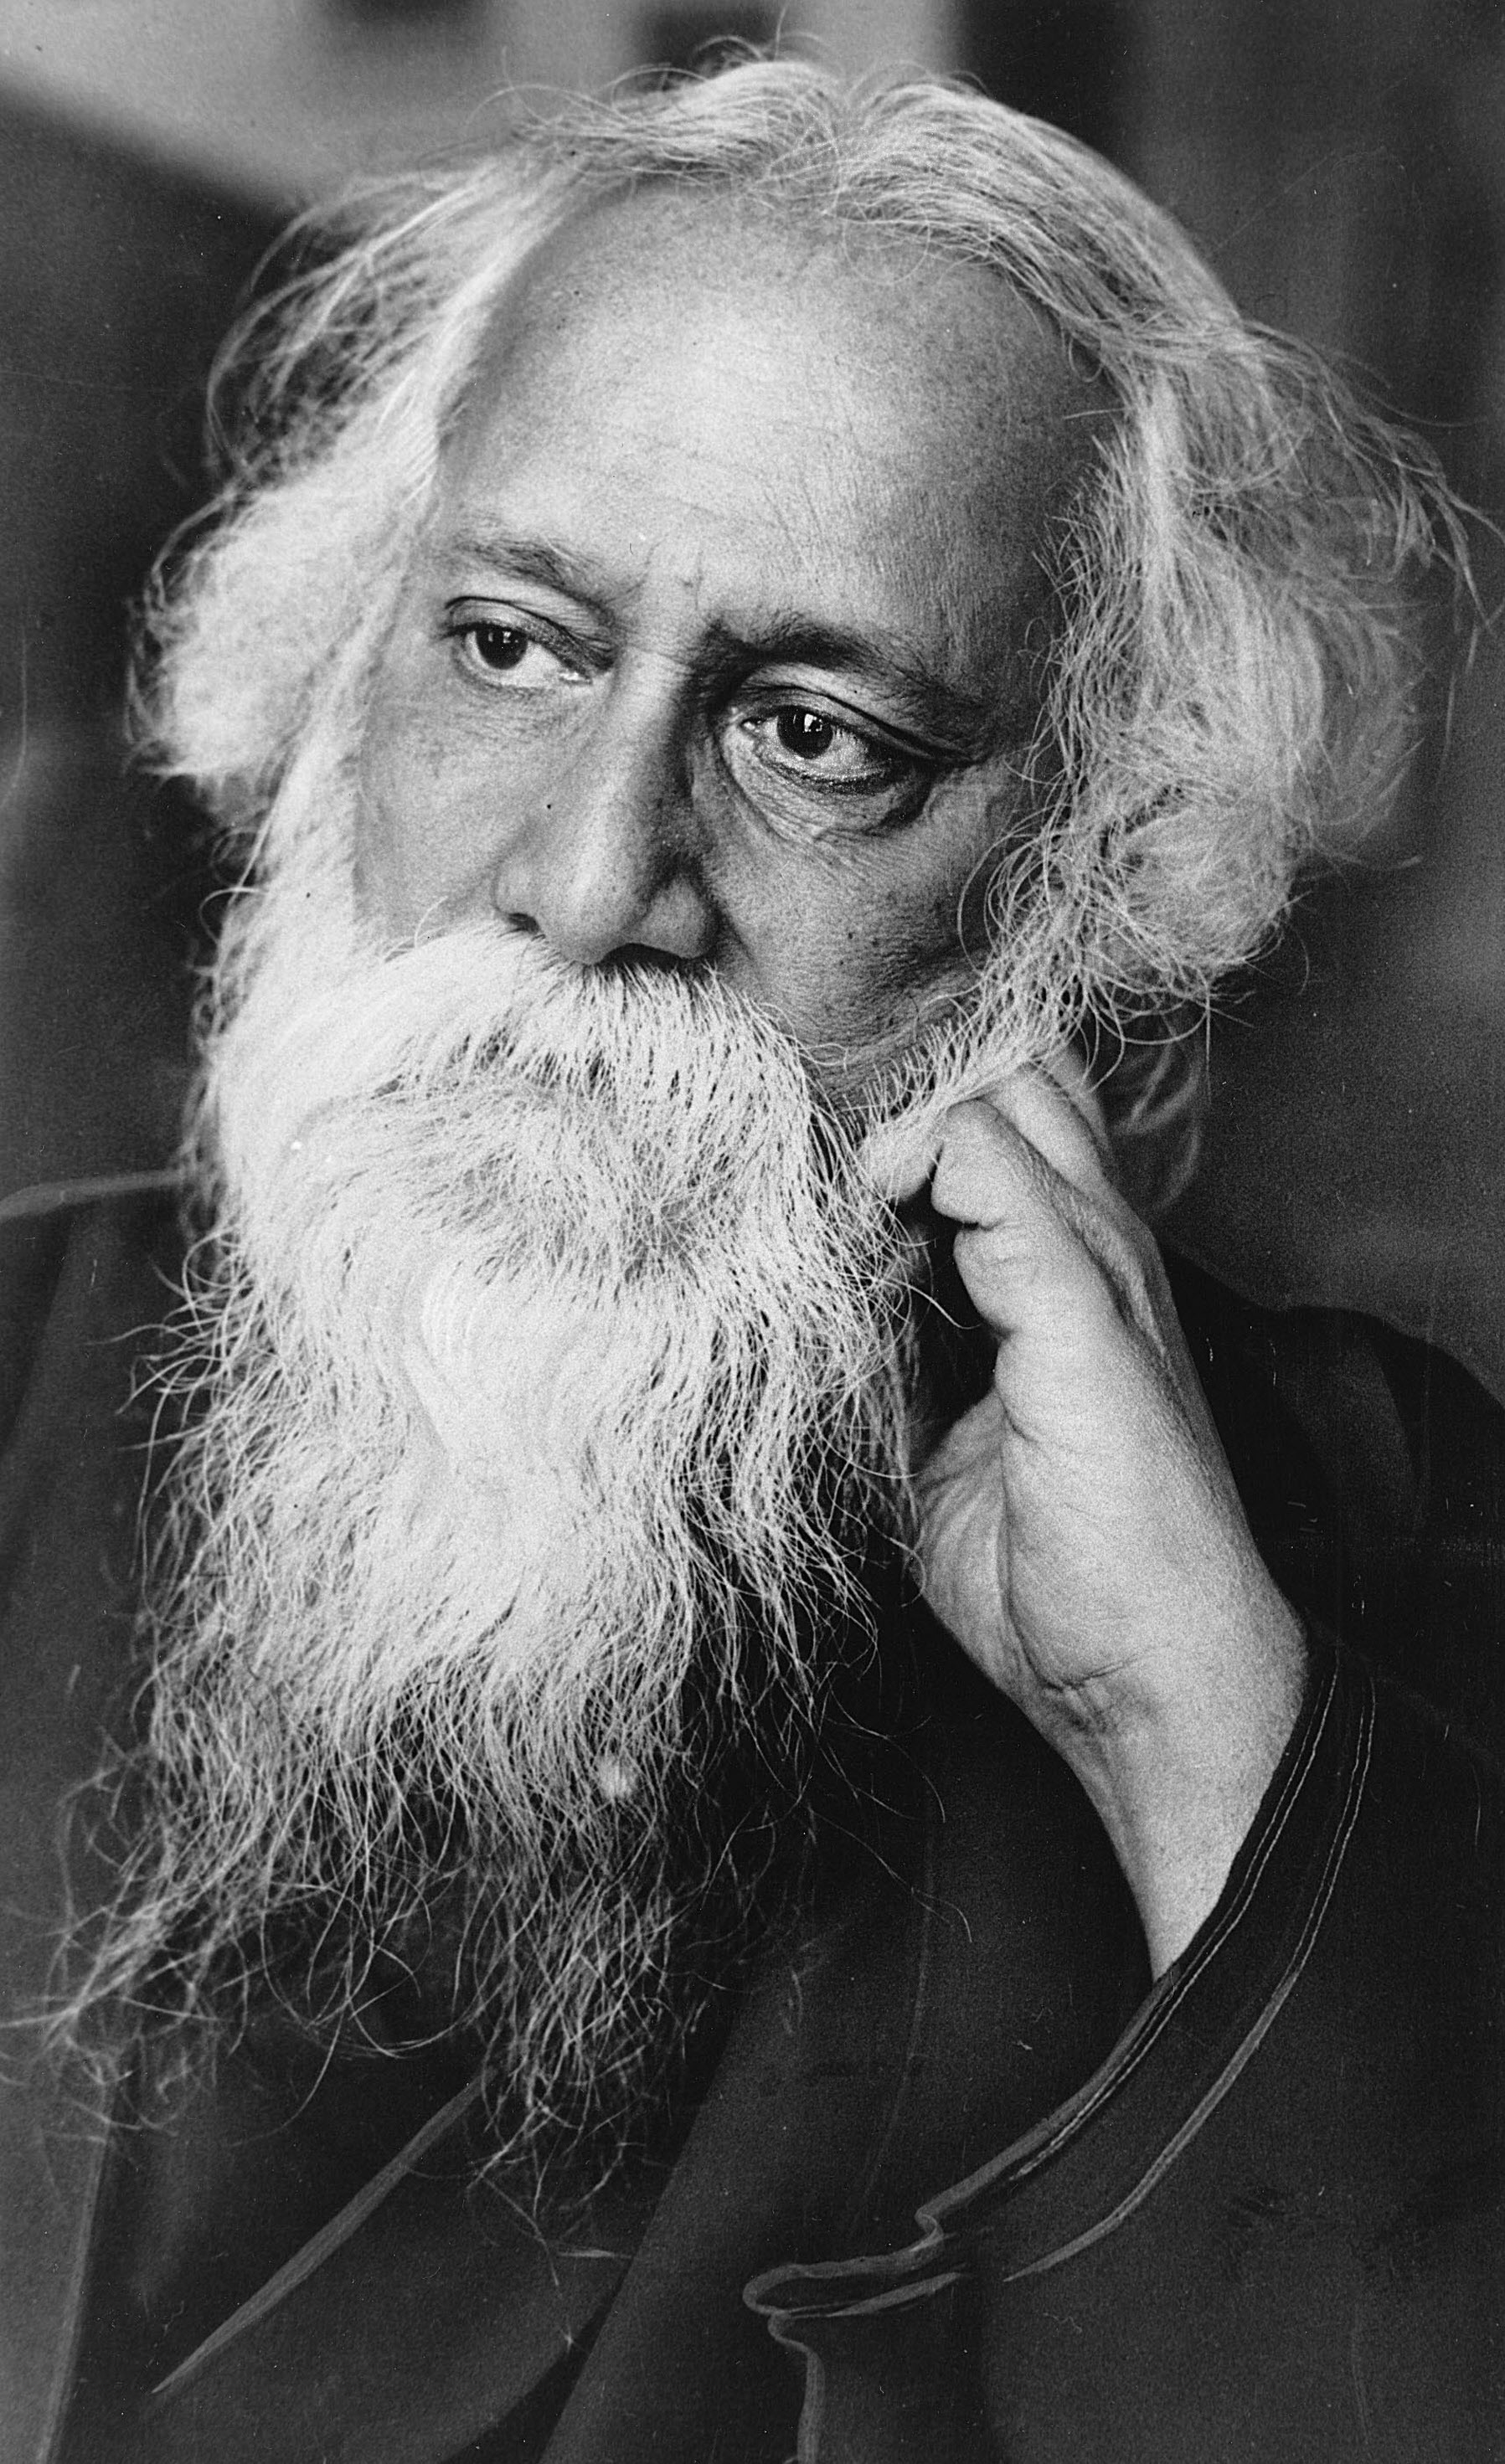 Tagore - This is an undated photo of Sir Rabindranath Tagore, Hindu poet, writer and philosopher, in Calcutta, India.  Tagore was born in Calcutta in 1861 and was the first Asian to receive the Nobel Prize in literature in 1913.  He was knighted in 1915, but denounced the honor in 1919 to protest against British policy in Punjab.  He died on Aug. 7, 1941.  (AP Photo) ORG XMIT: APHS103